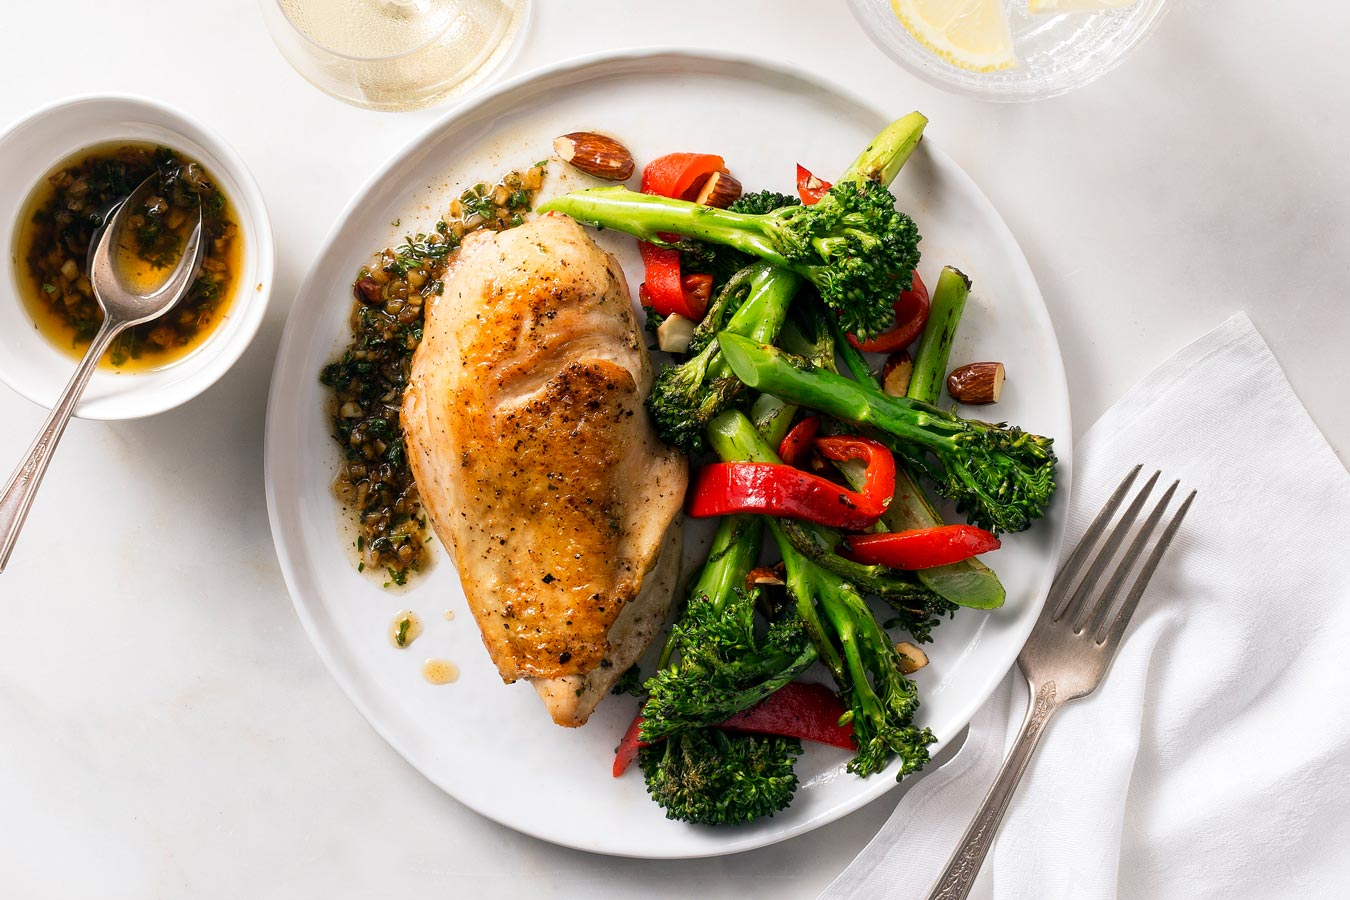 Sicilian chicken breasts with salmoriglio sauce and broccoli